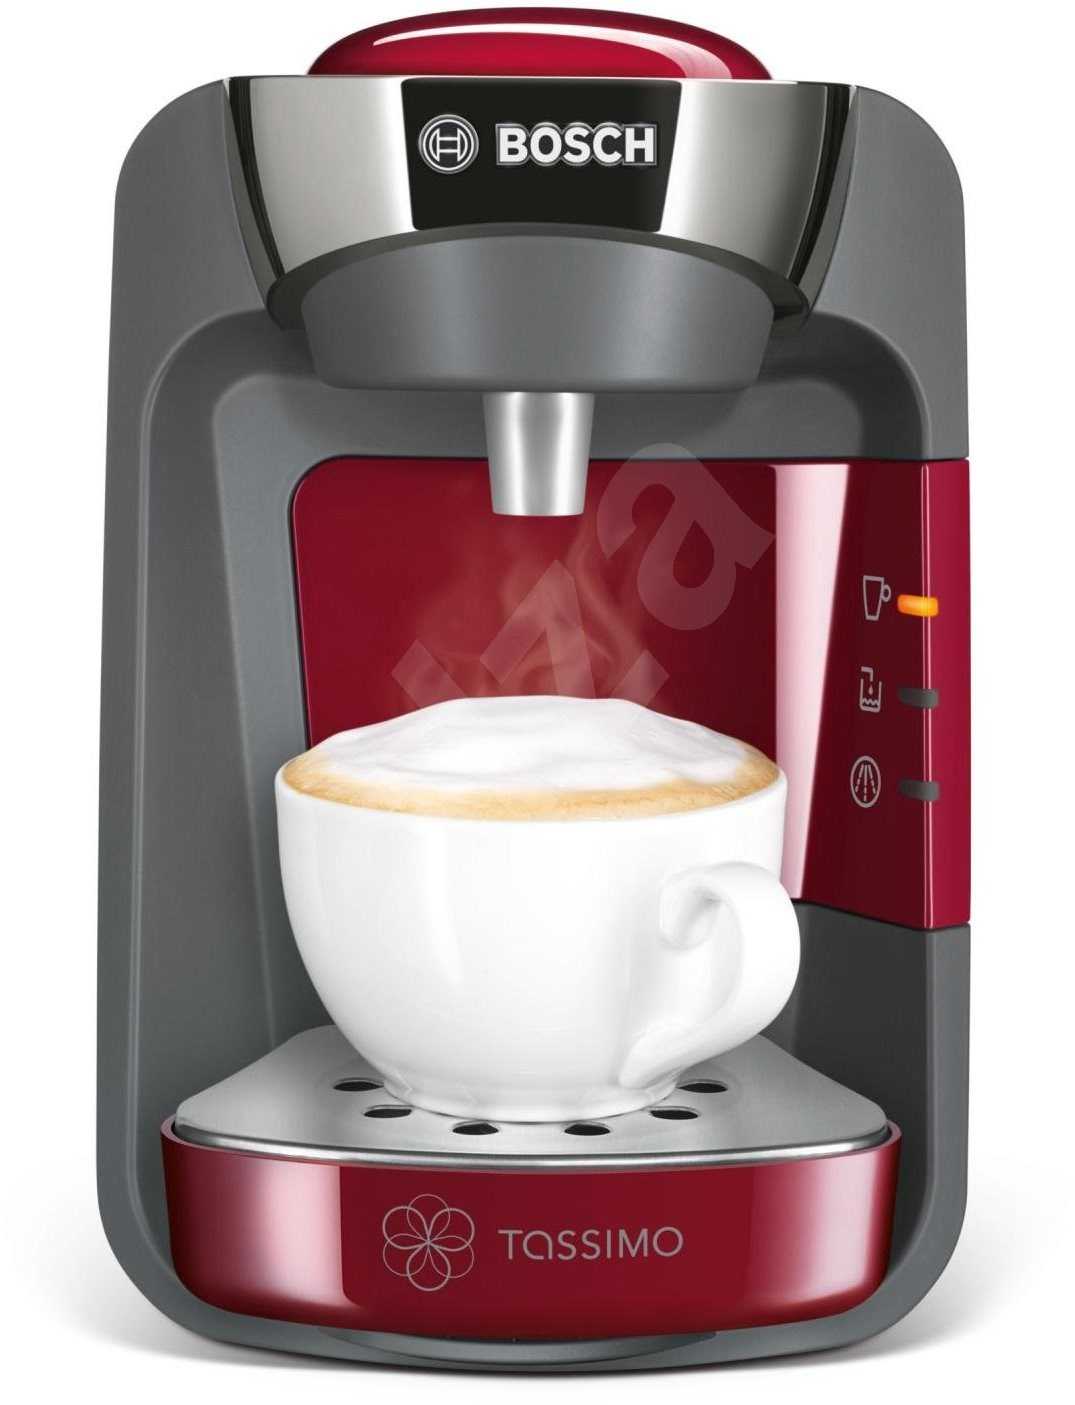 bosch tassimo tas3203 suny capsule coffee machine. Black Bedroom Furniture Sets. Home Design Ideas